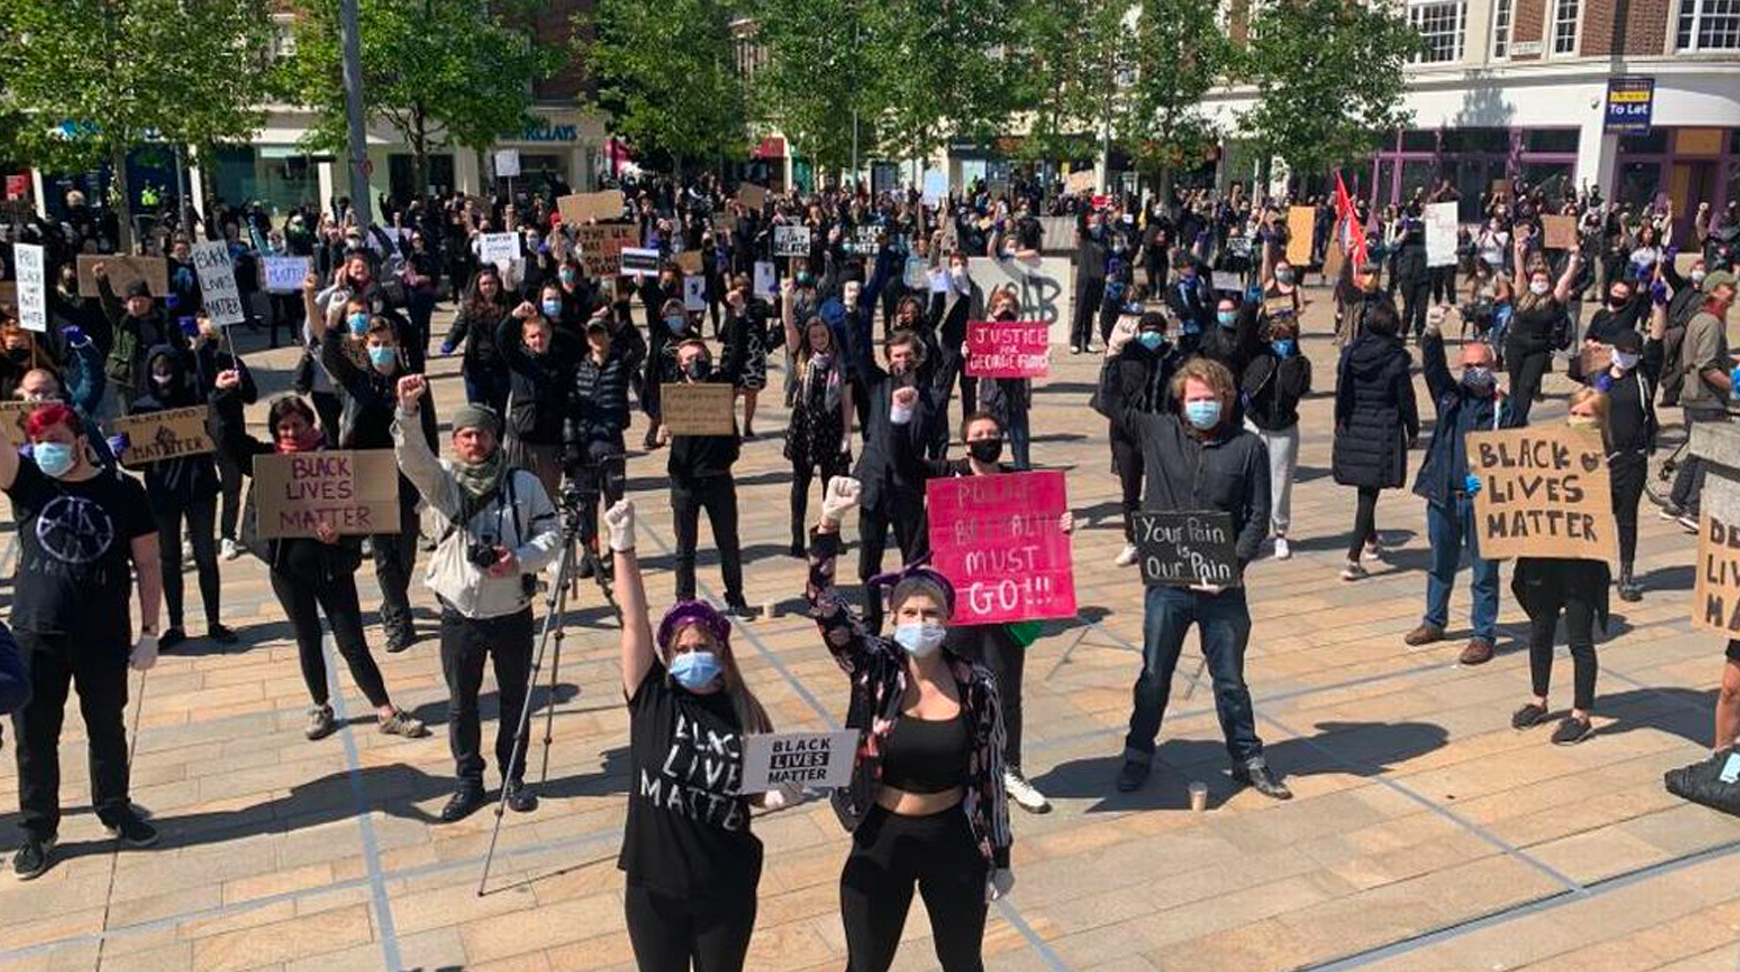 Christopher Alder: Hull BLM protest continues the fight for justice